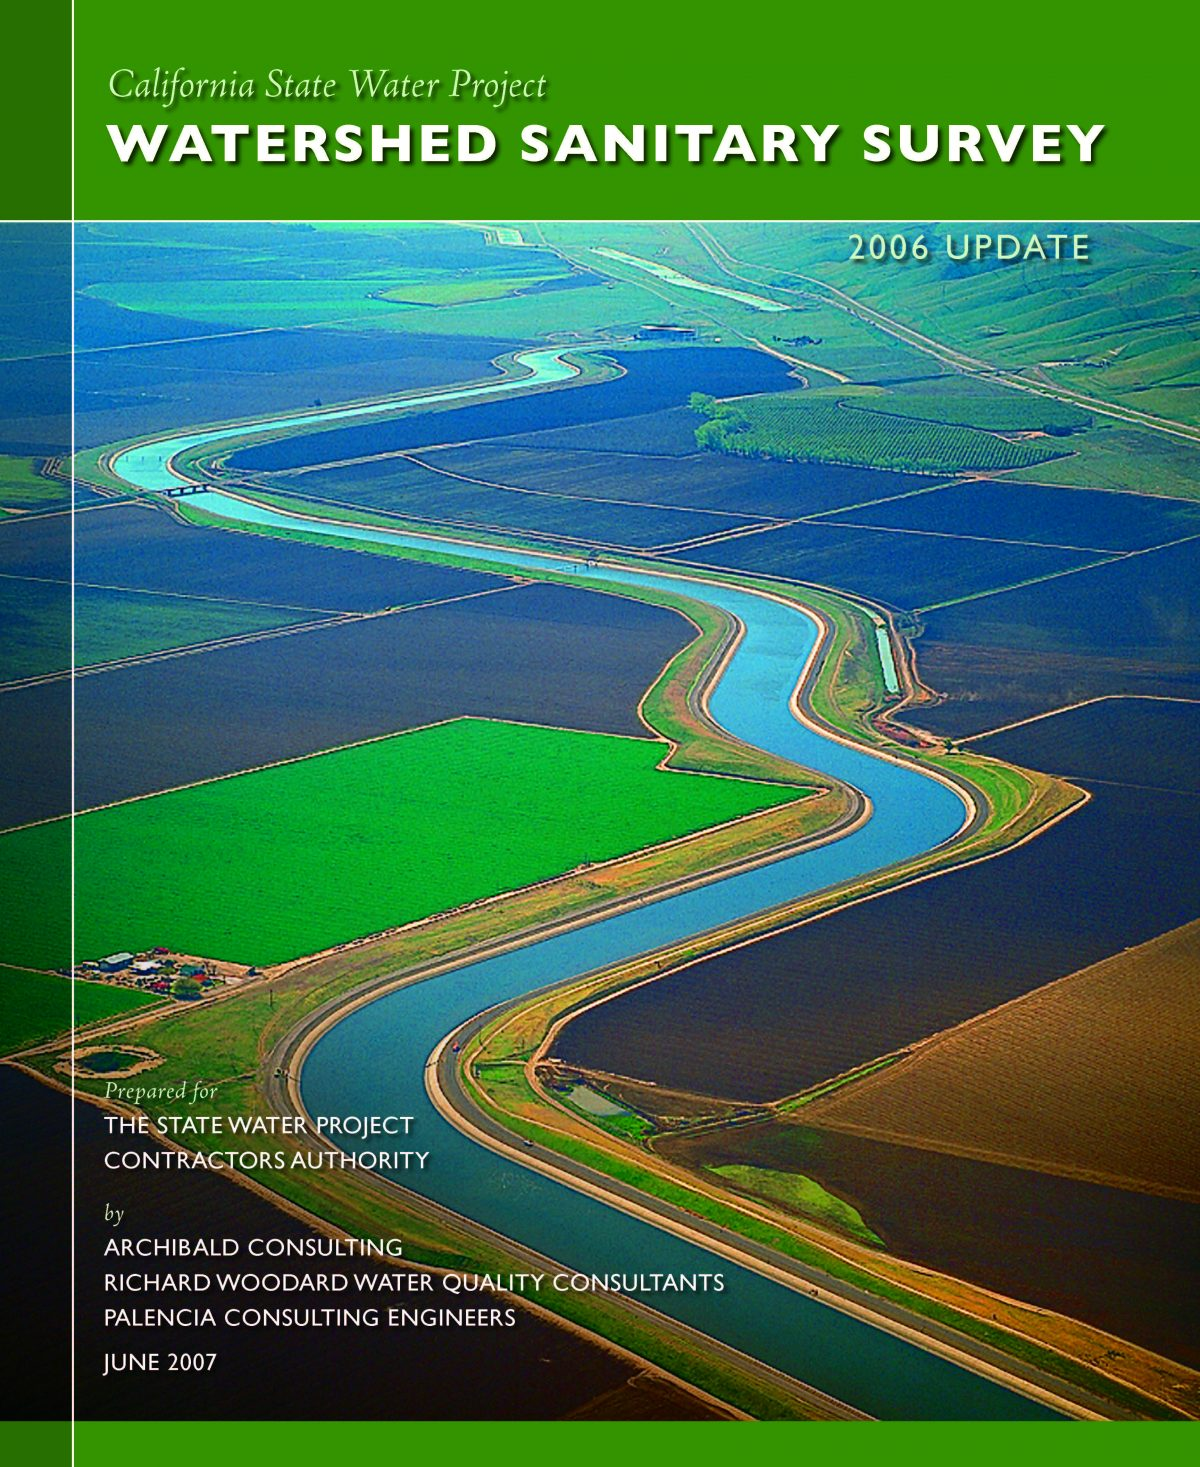 California State Water Project 2006 Watershed Sanitary Survey Update